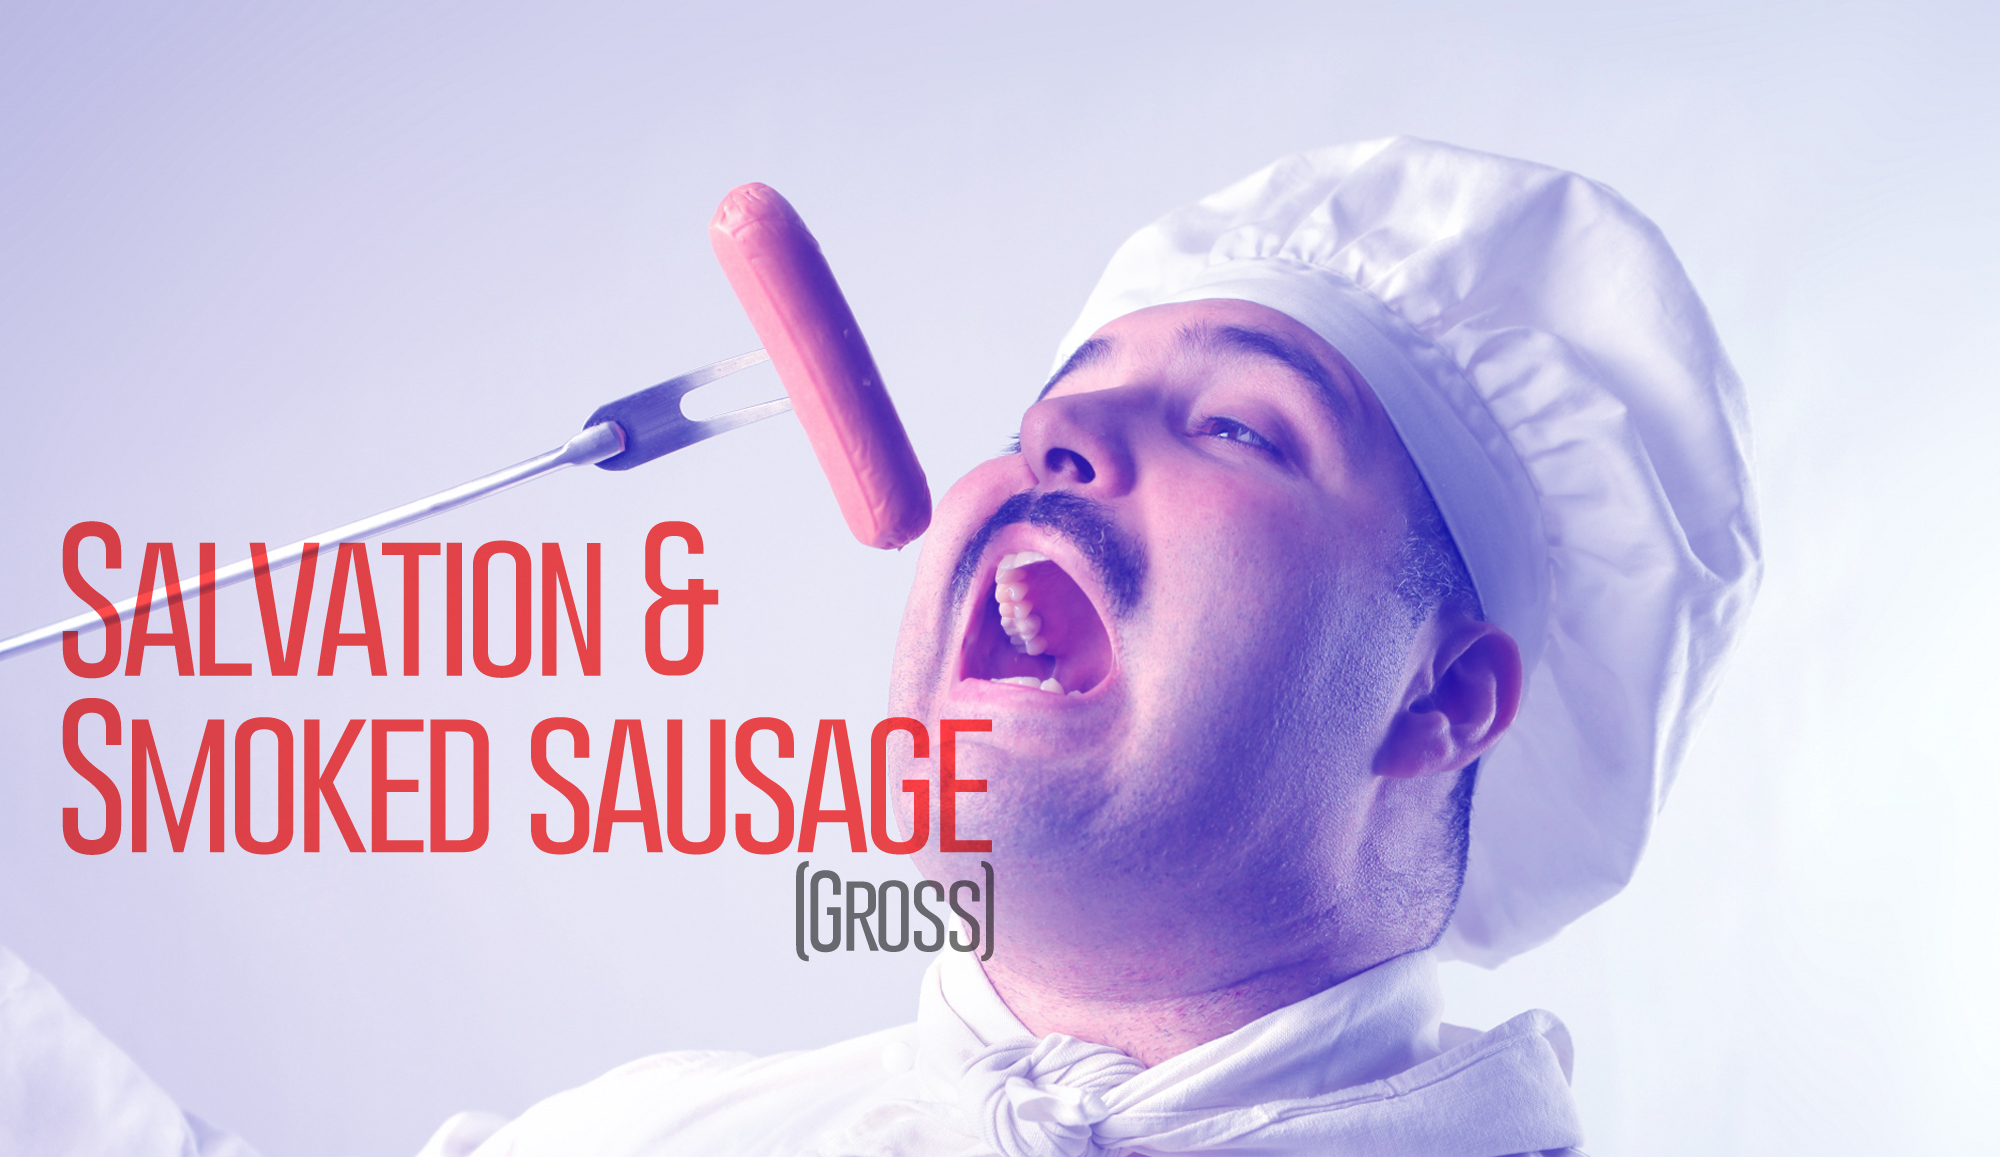 Salvation-Smoked-Sausage.jpg